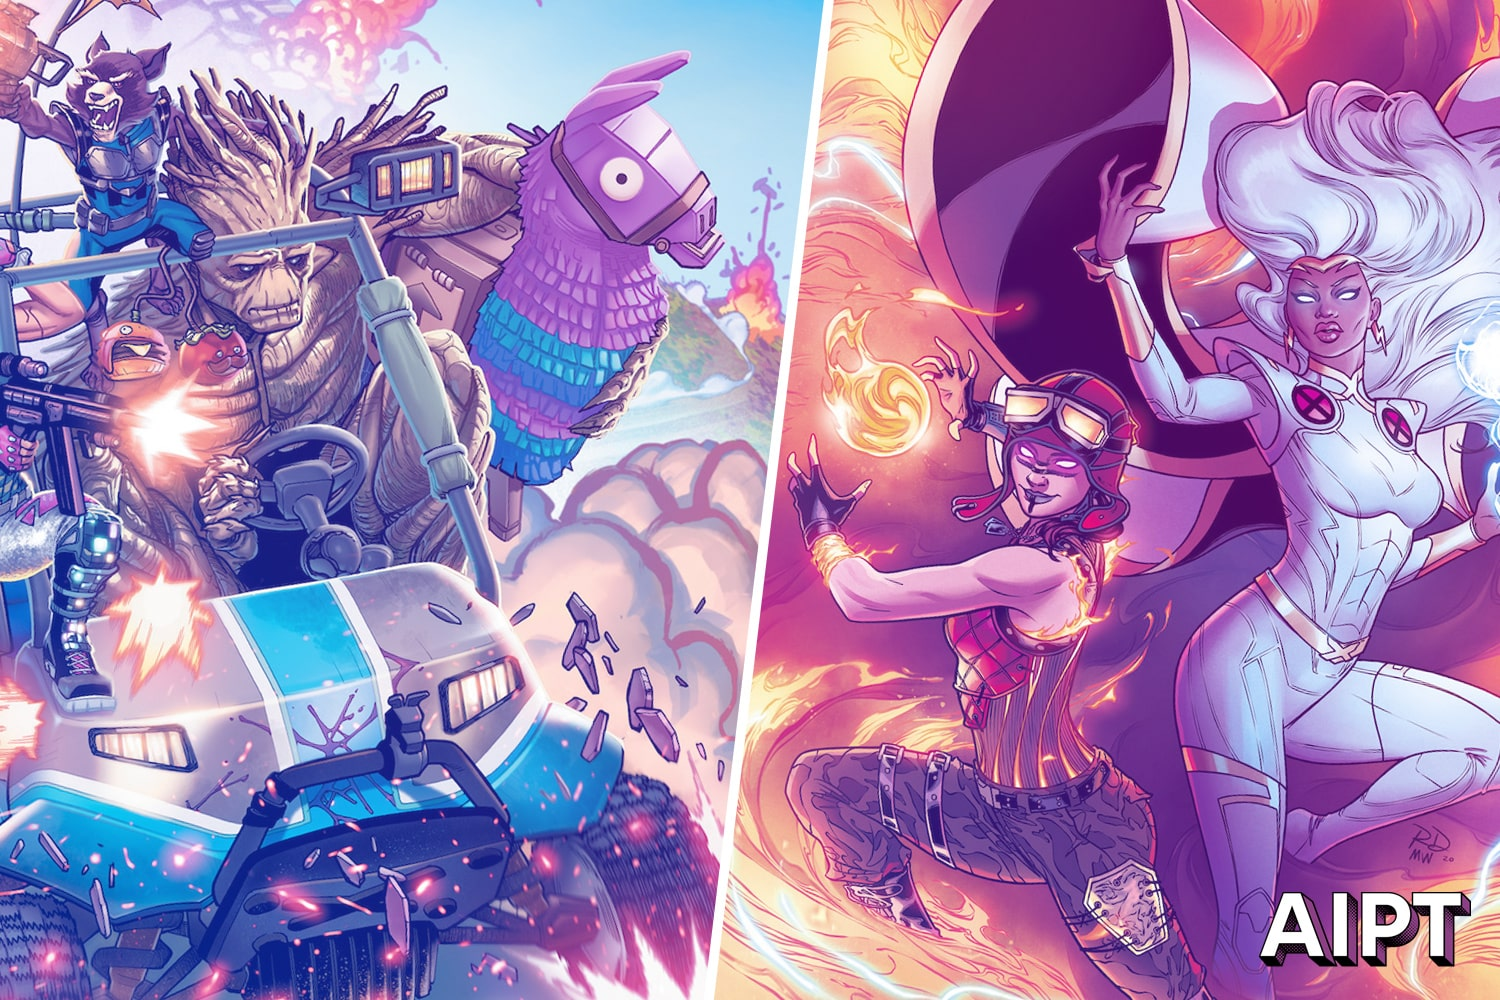 You don't have to log in to check out these Fortnite variant covers by Joe Quesada, Mark Brooks, Marco Checchetto, Ed McGuinness, and more.